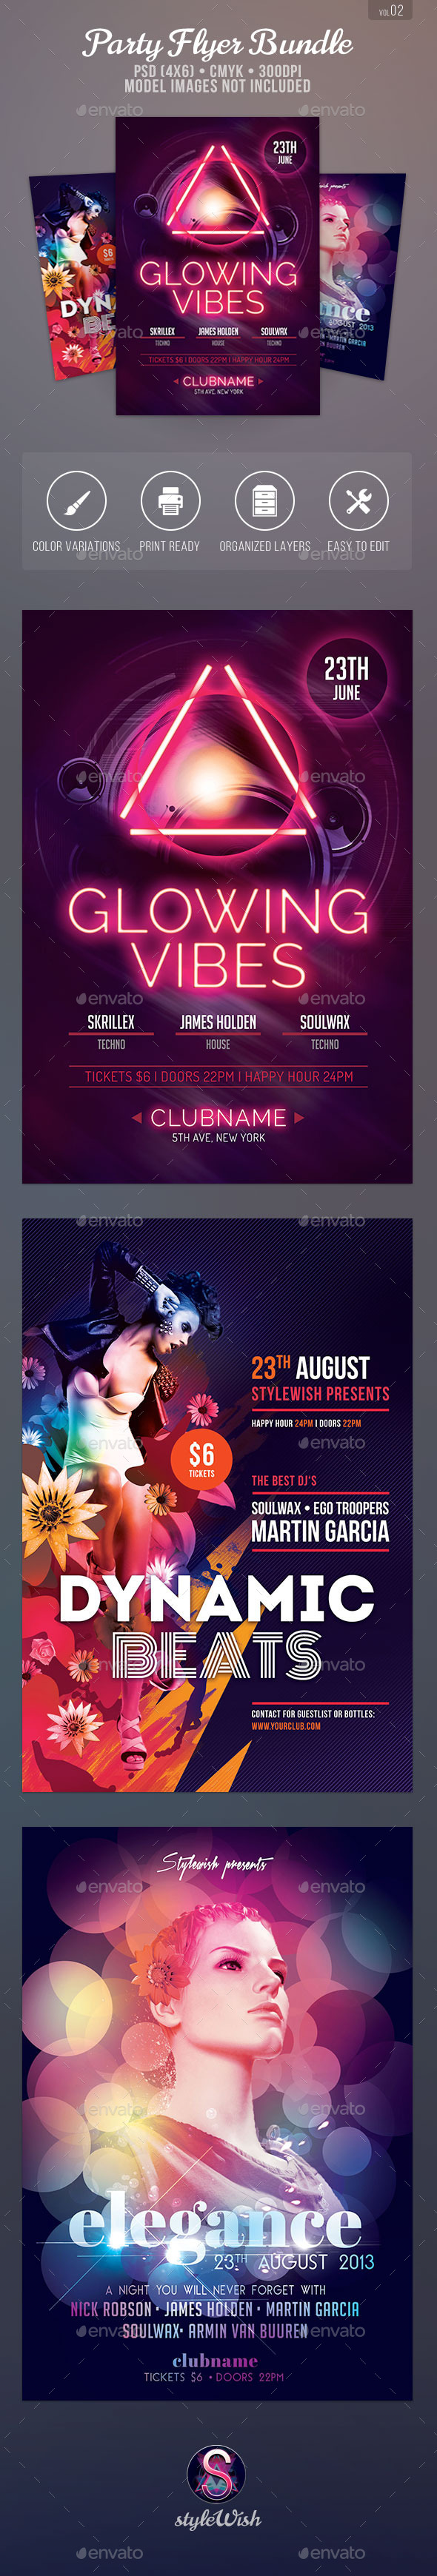 Top Party Flyer Bundle Vol.2 - Clubs & Parties Events